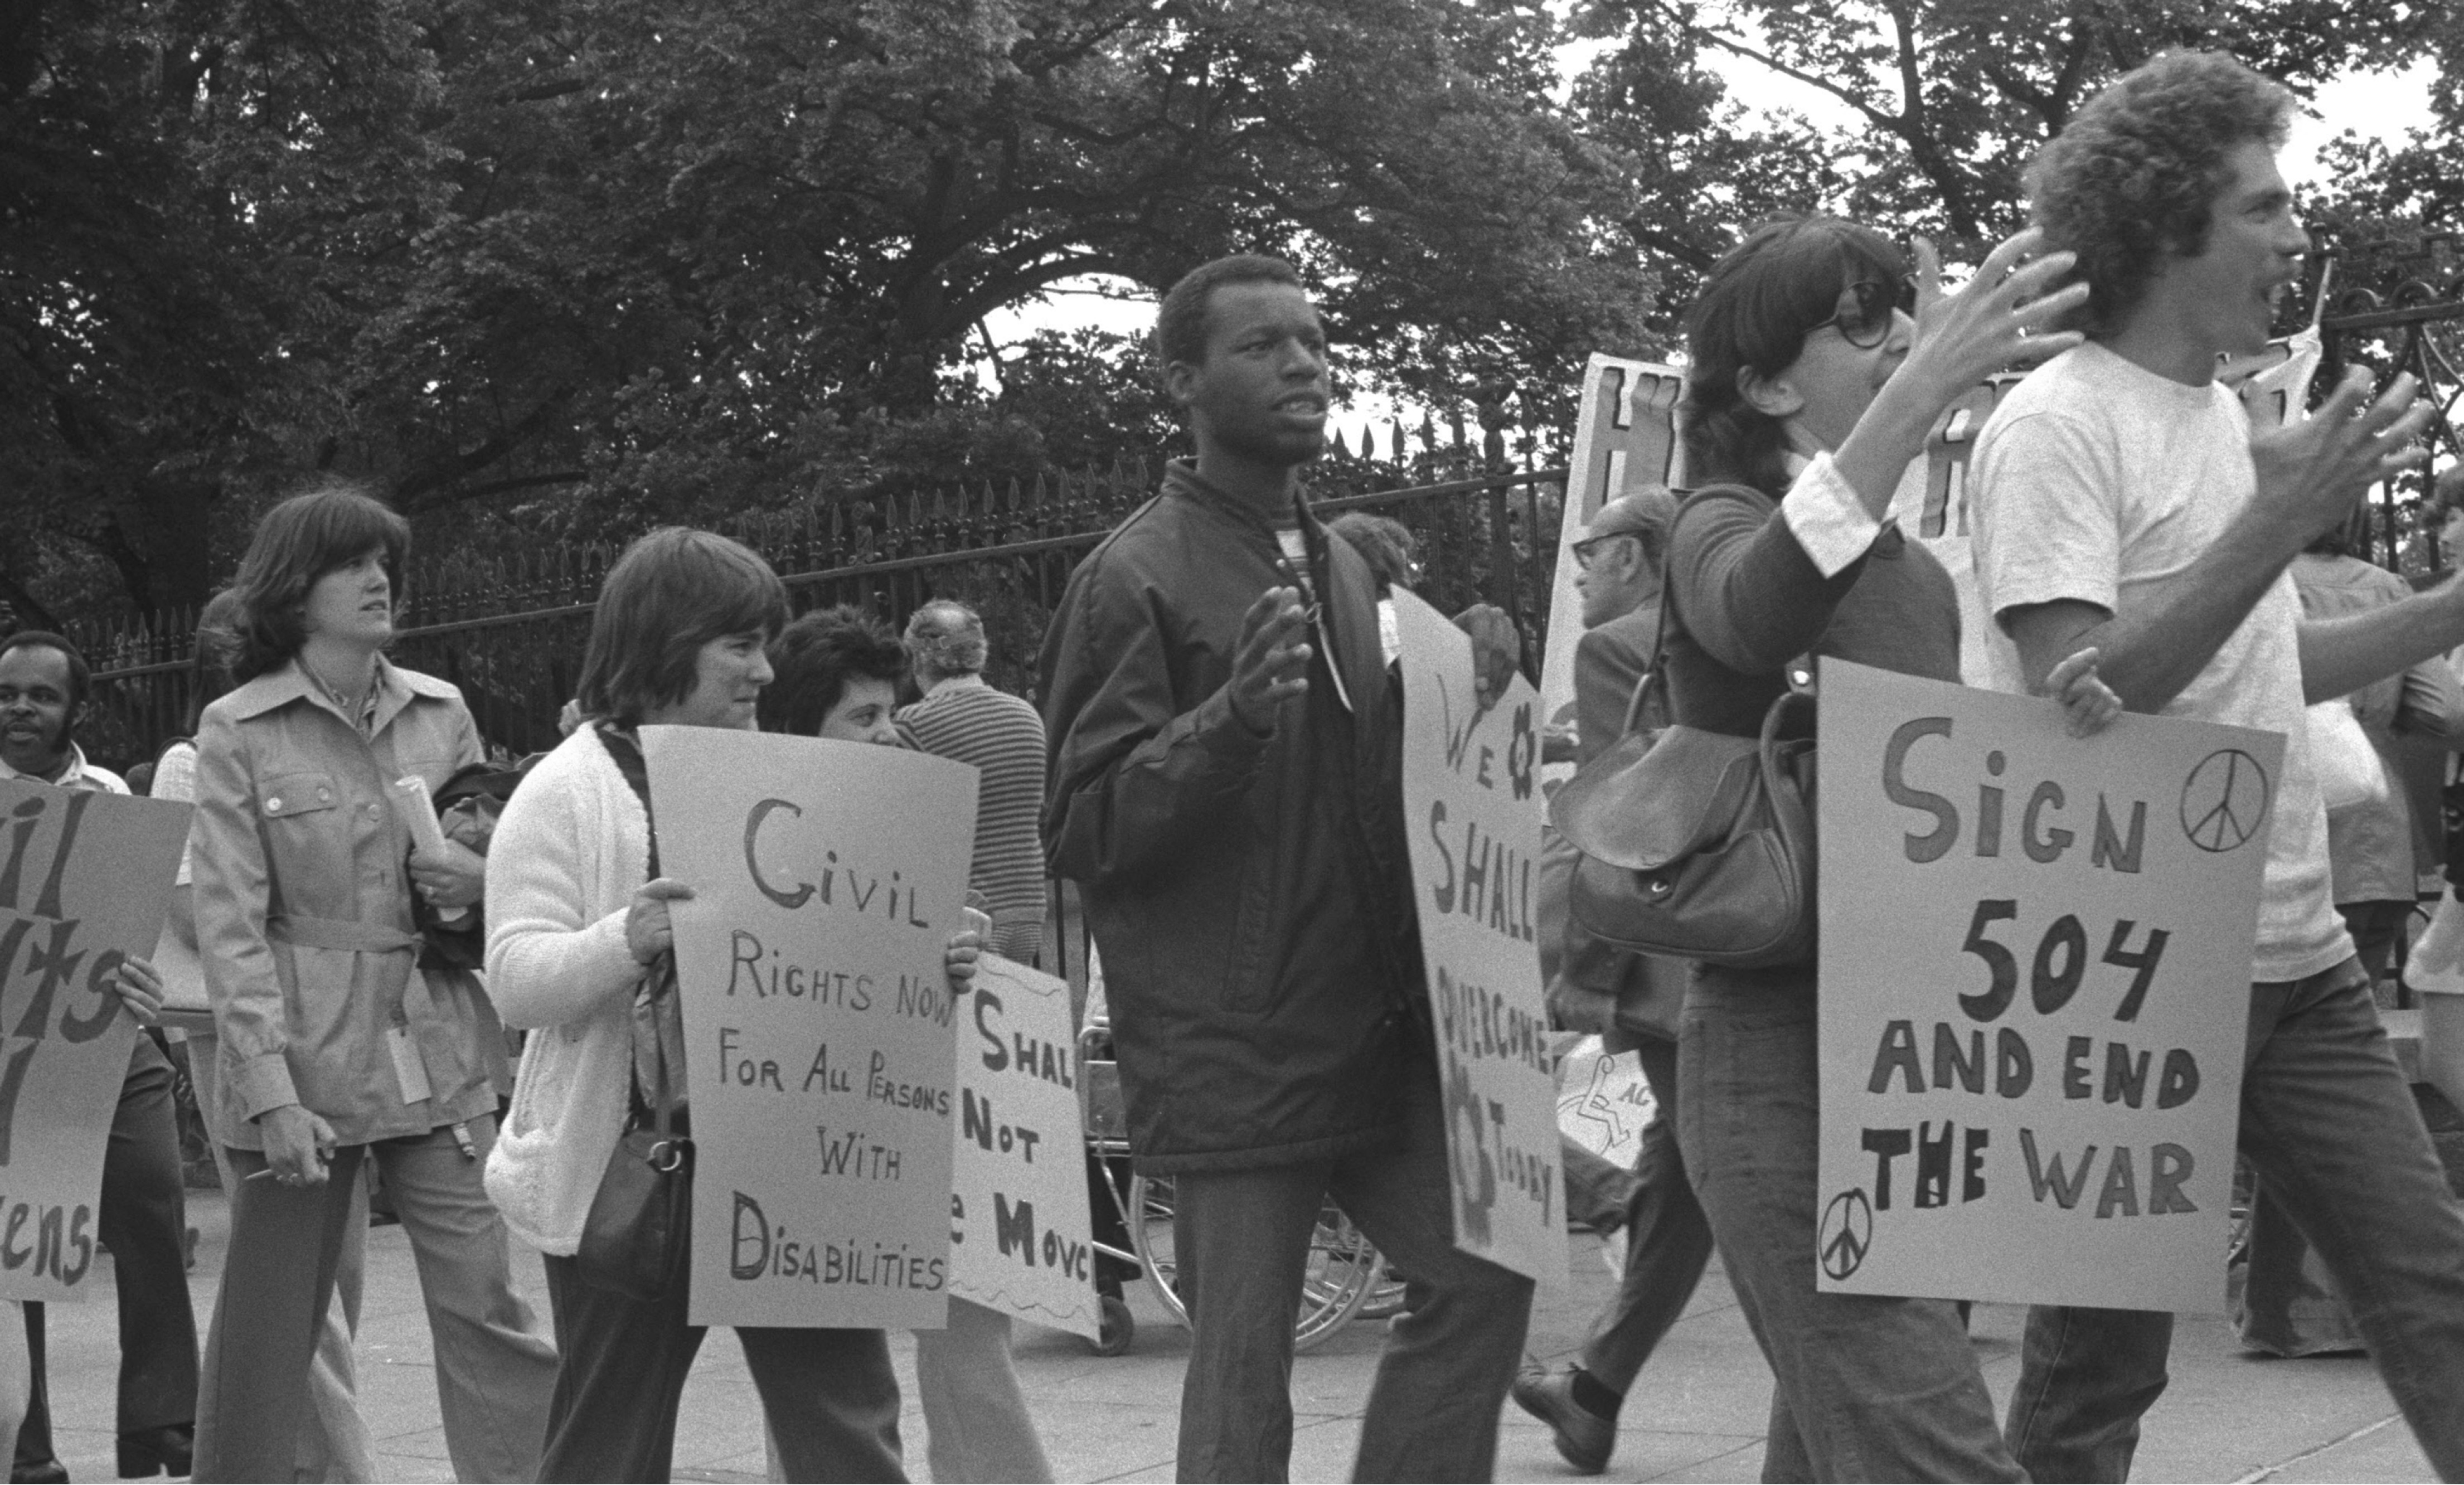 "Demonstrators are pictured in black and white, holding signs that read ""Civil Rights Now for All Persons with Disabilities"" and ""Sign 504 and End the War."""